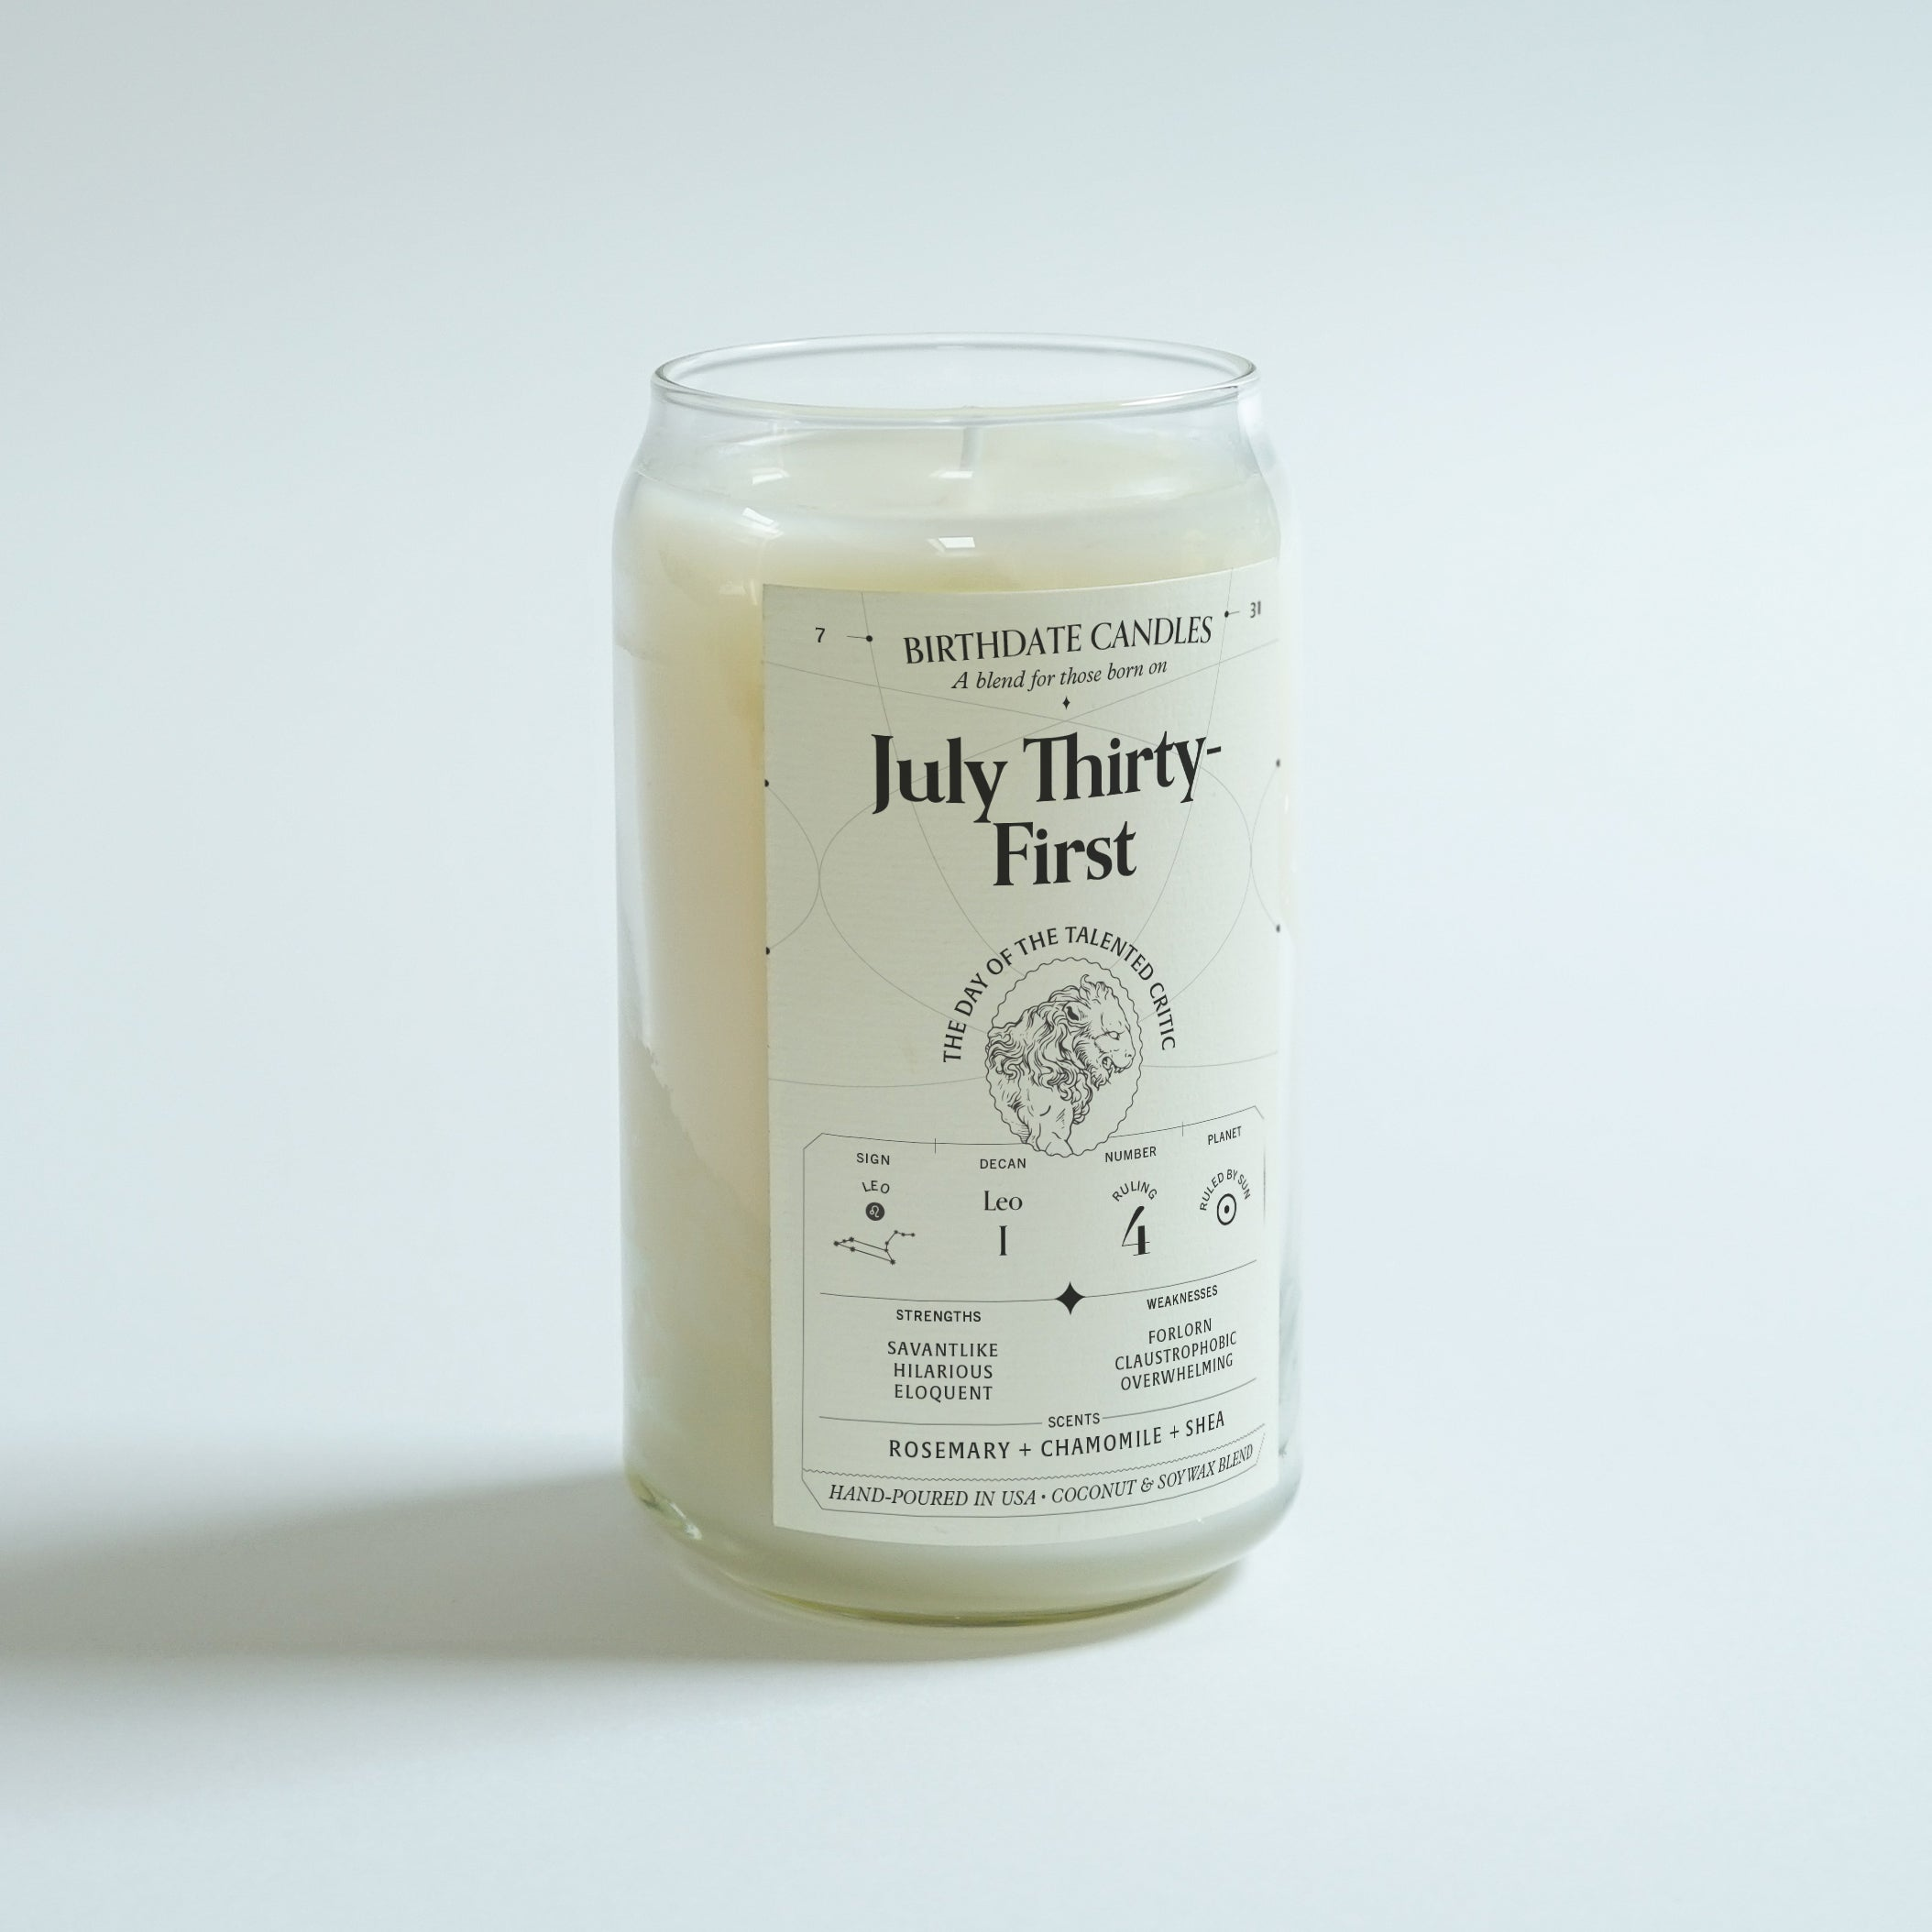 The July Thirty-First Candle